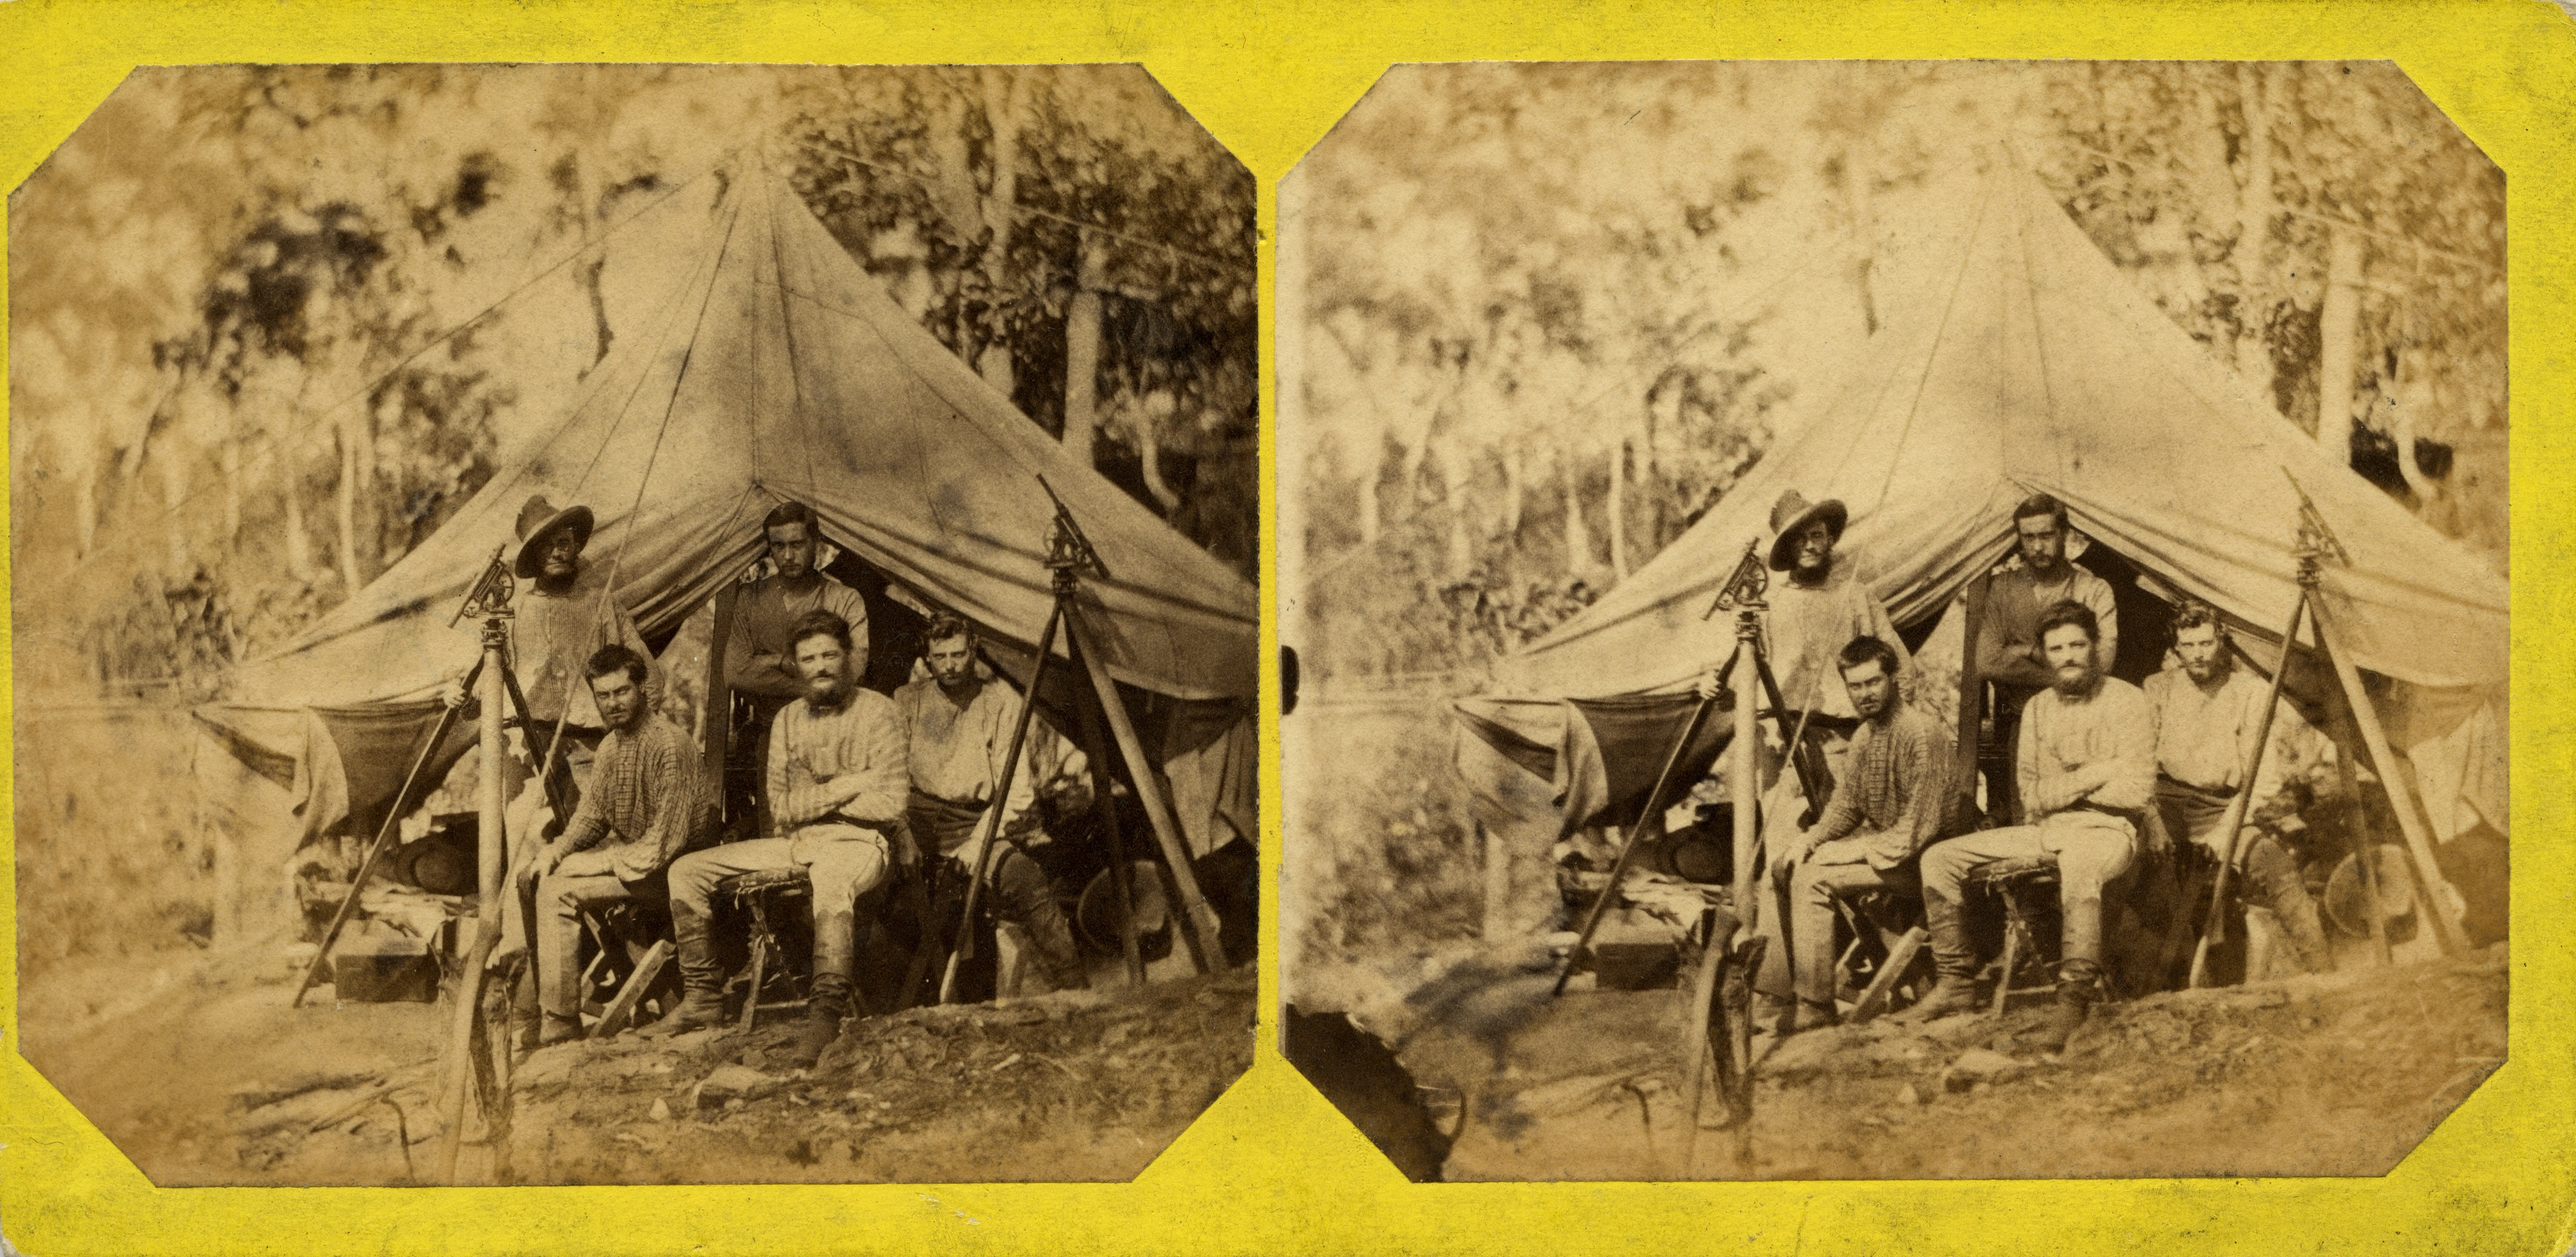 Stereoscopic image of Knuckey's camp, 1869